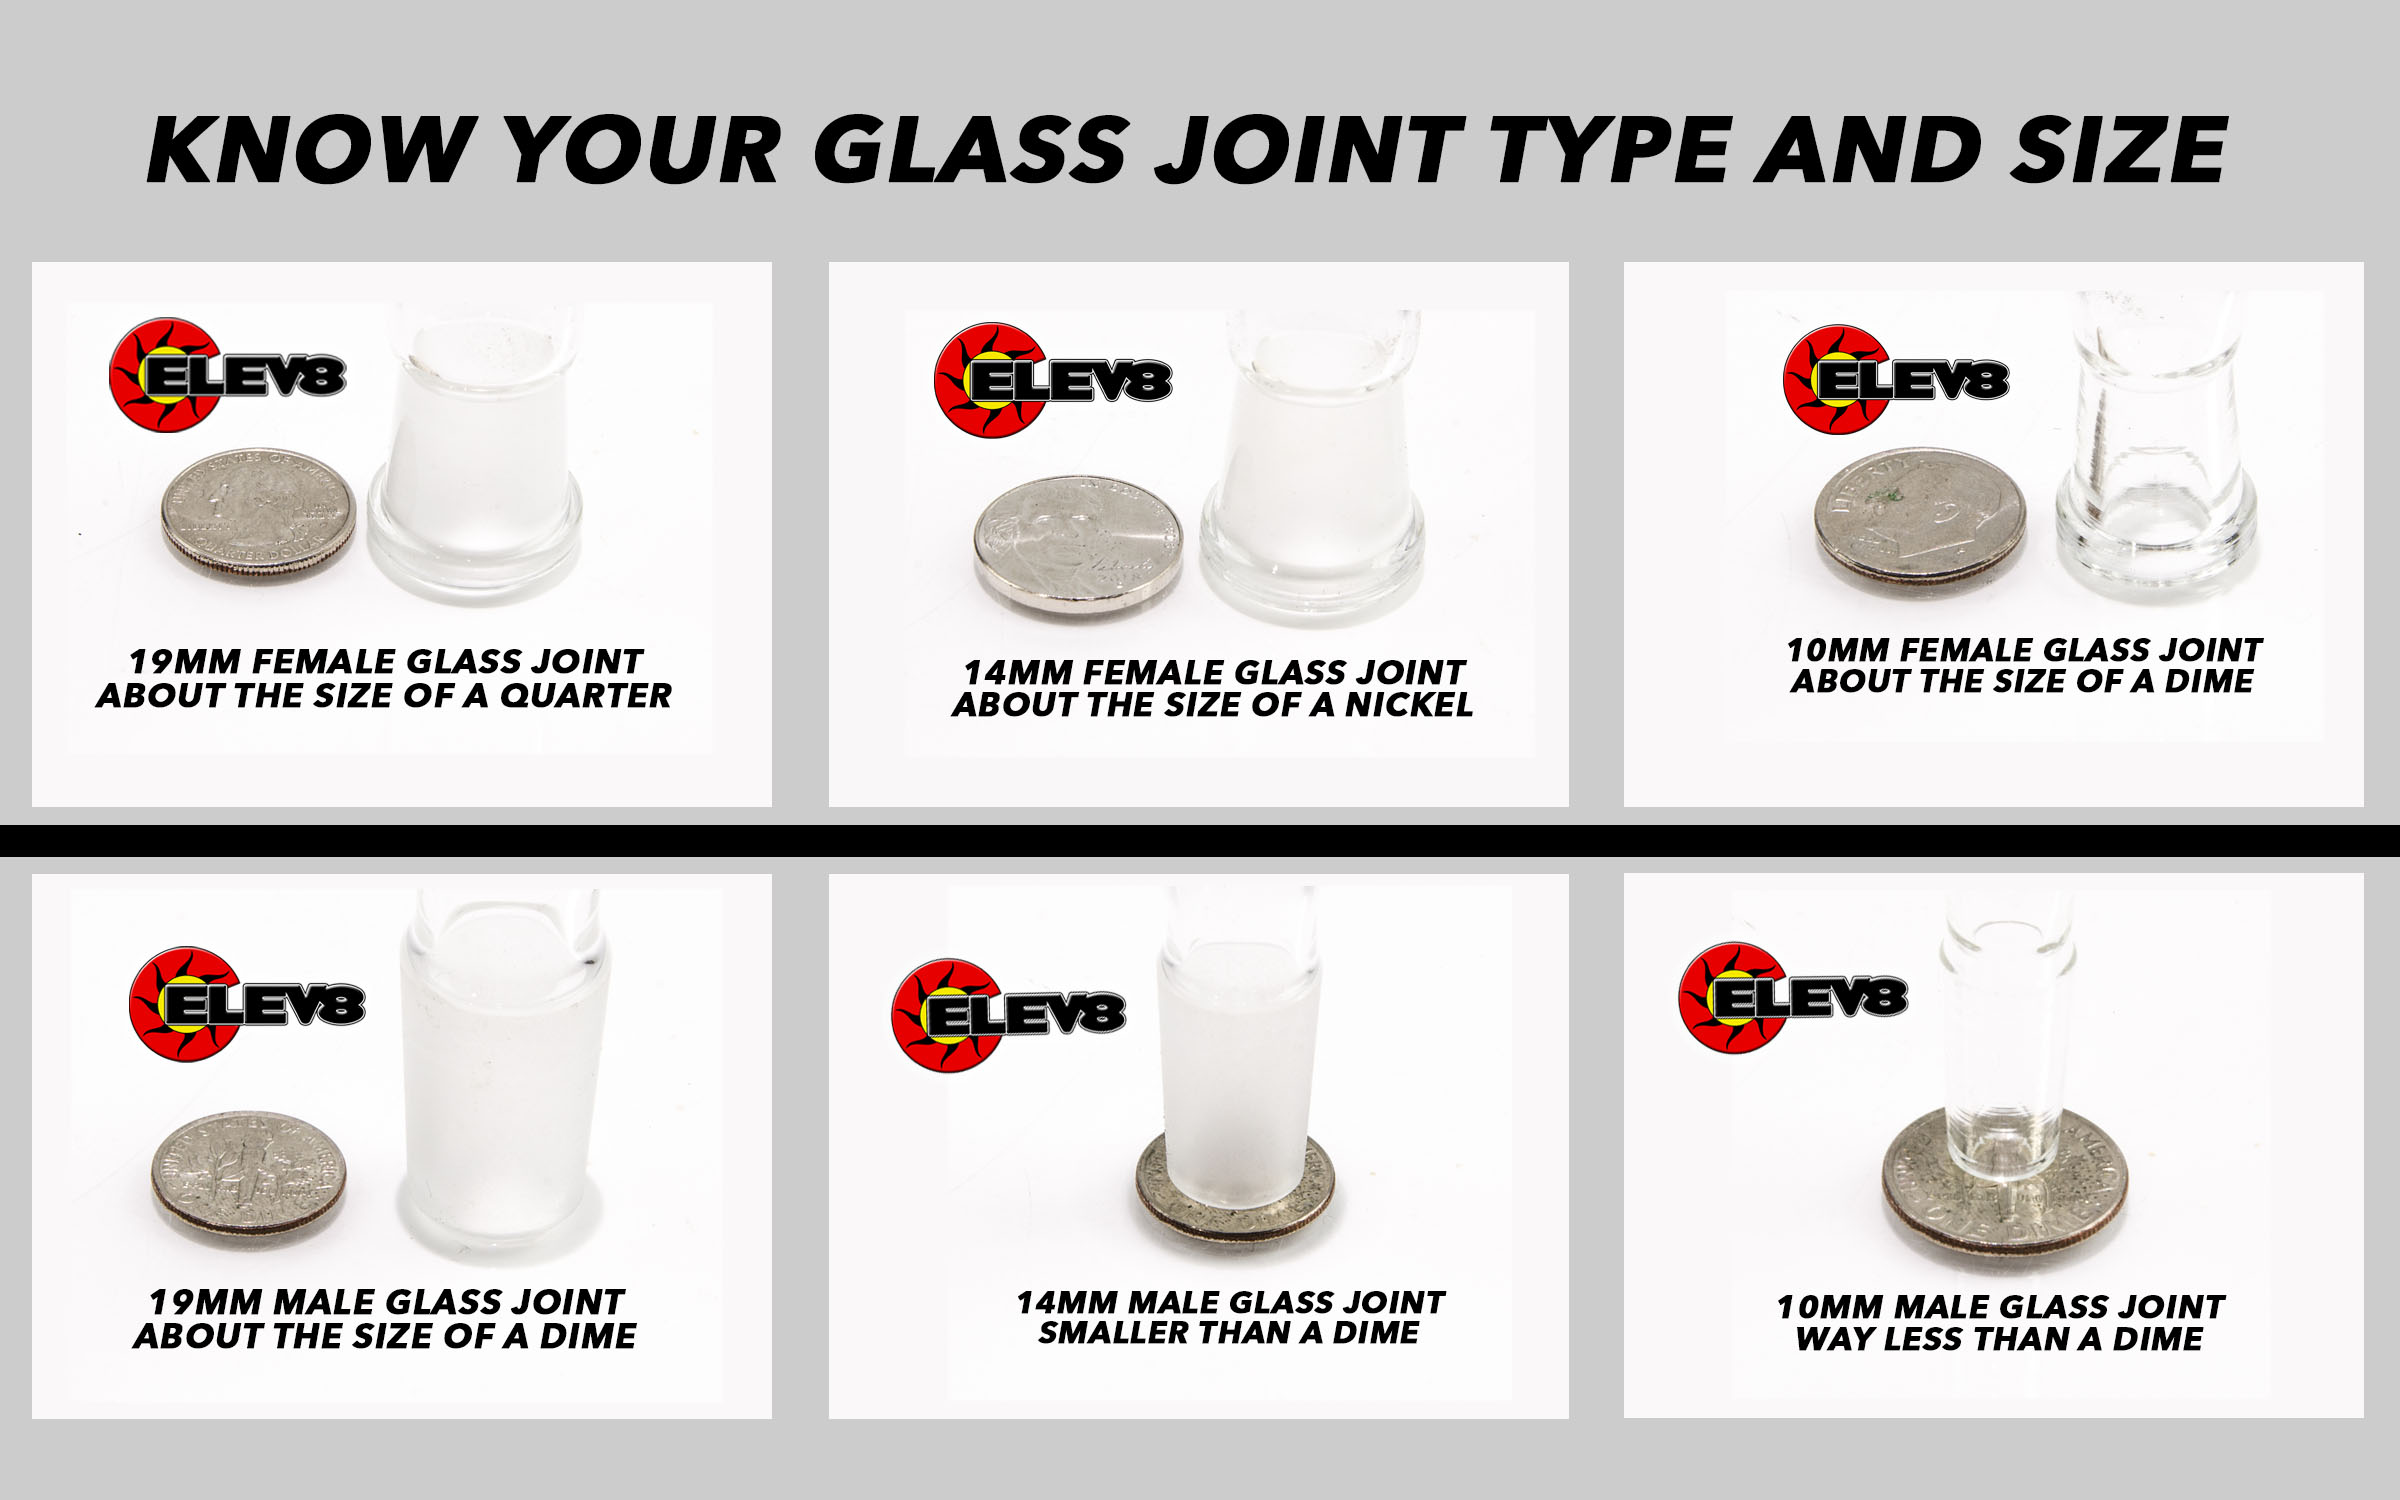 Know what size ground glass joint you have